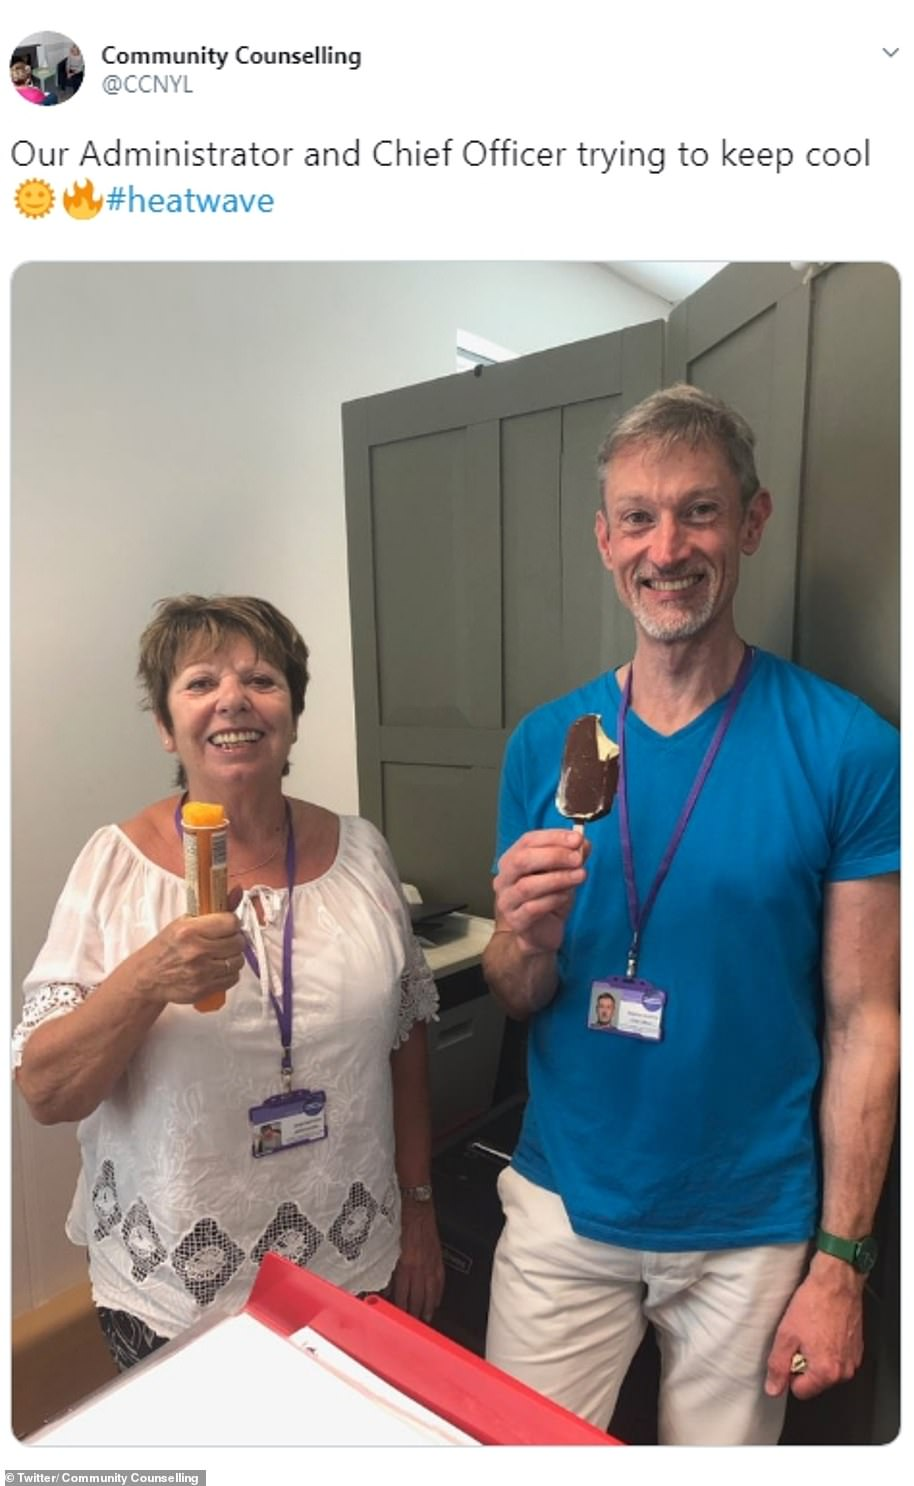 Workers bought ice cream for en masse to make sure they keep cool in the office today